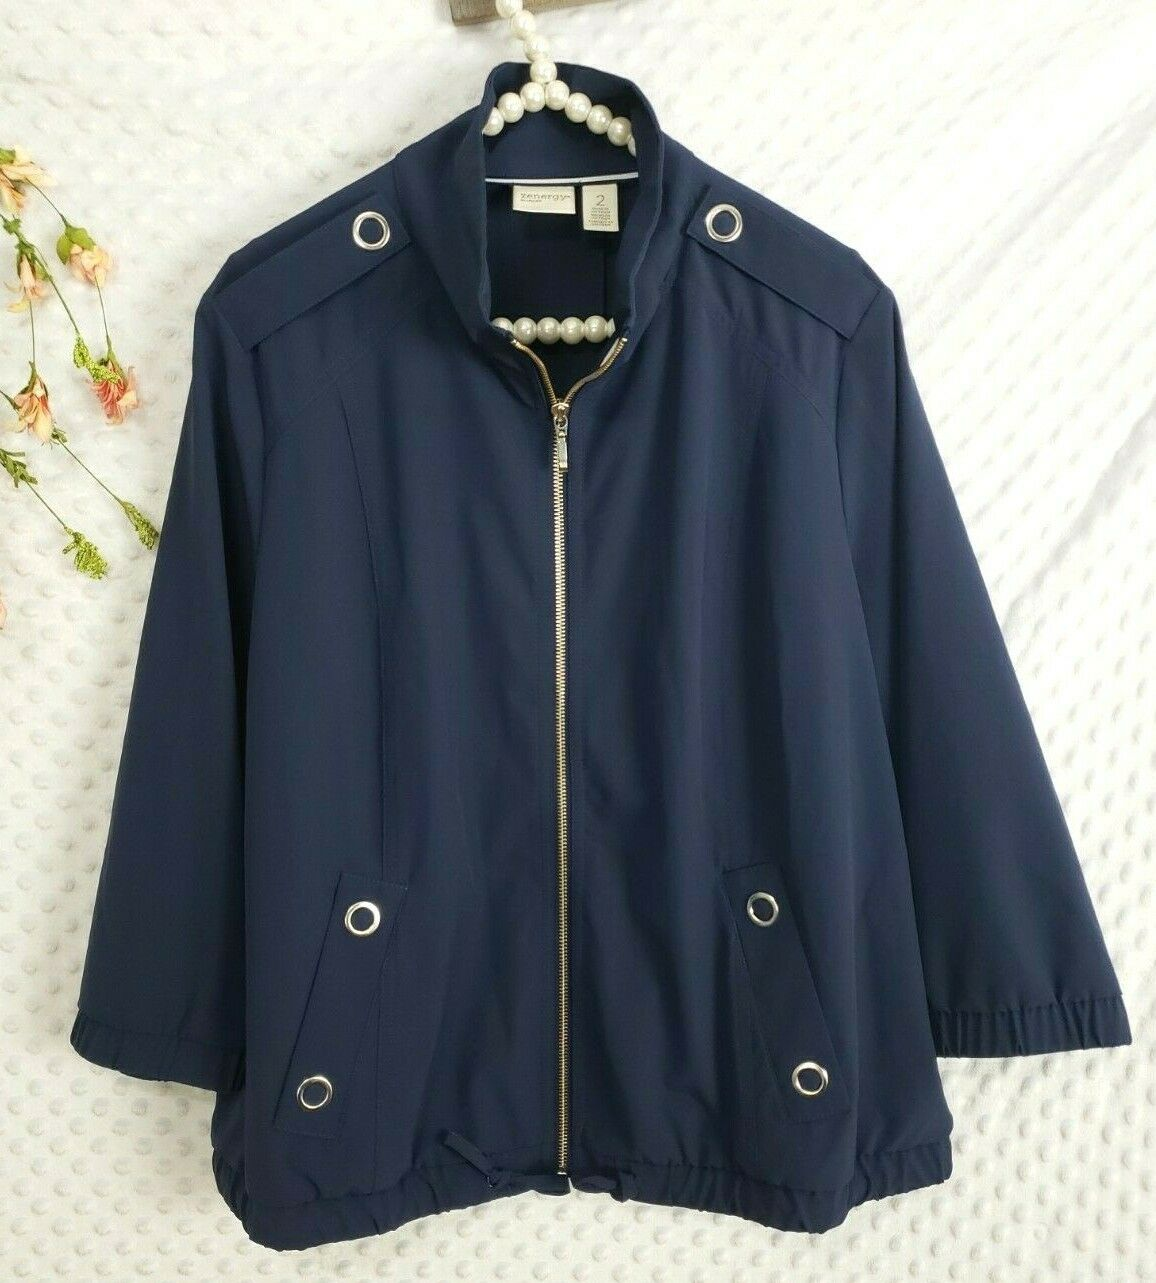 Chicos Zenergy 2 Jacket Womens Large Navy Blue 3/4 Sleeve Stretch Top Full Zip